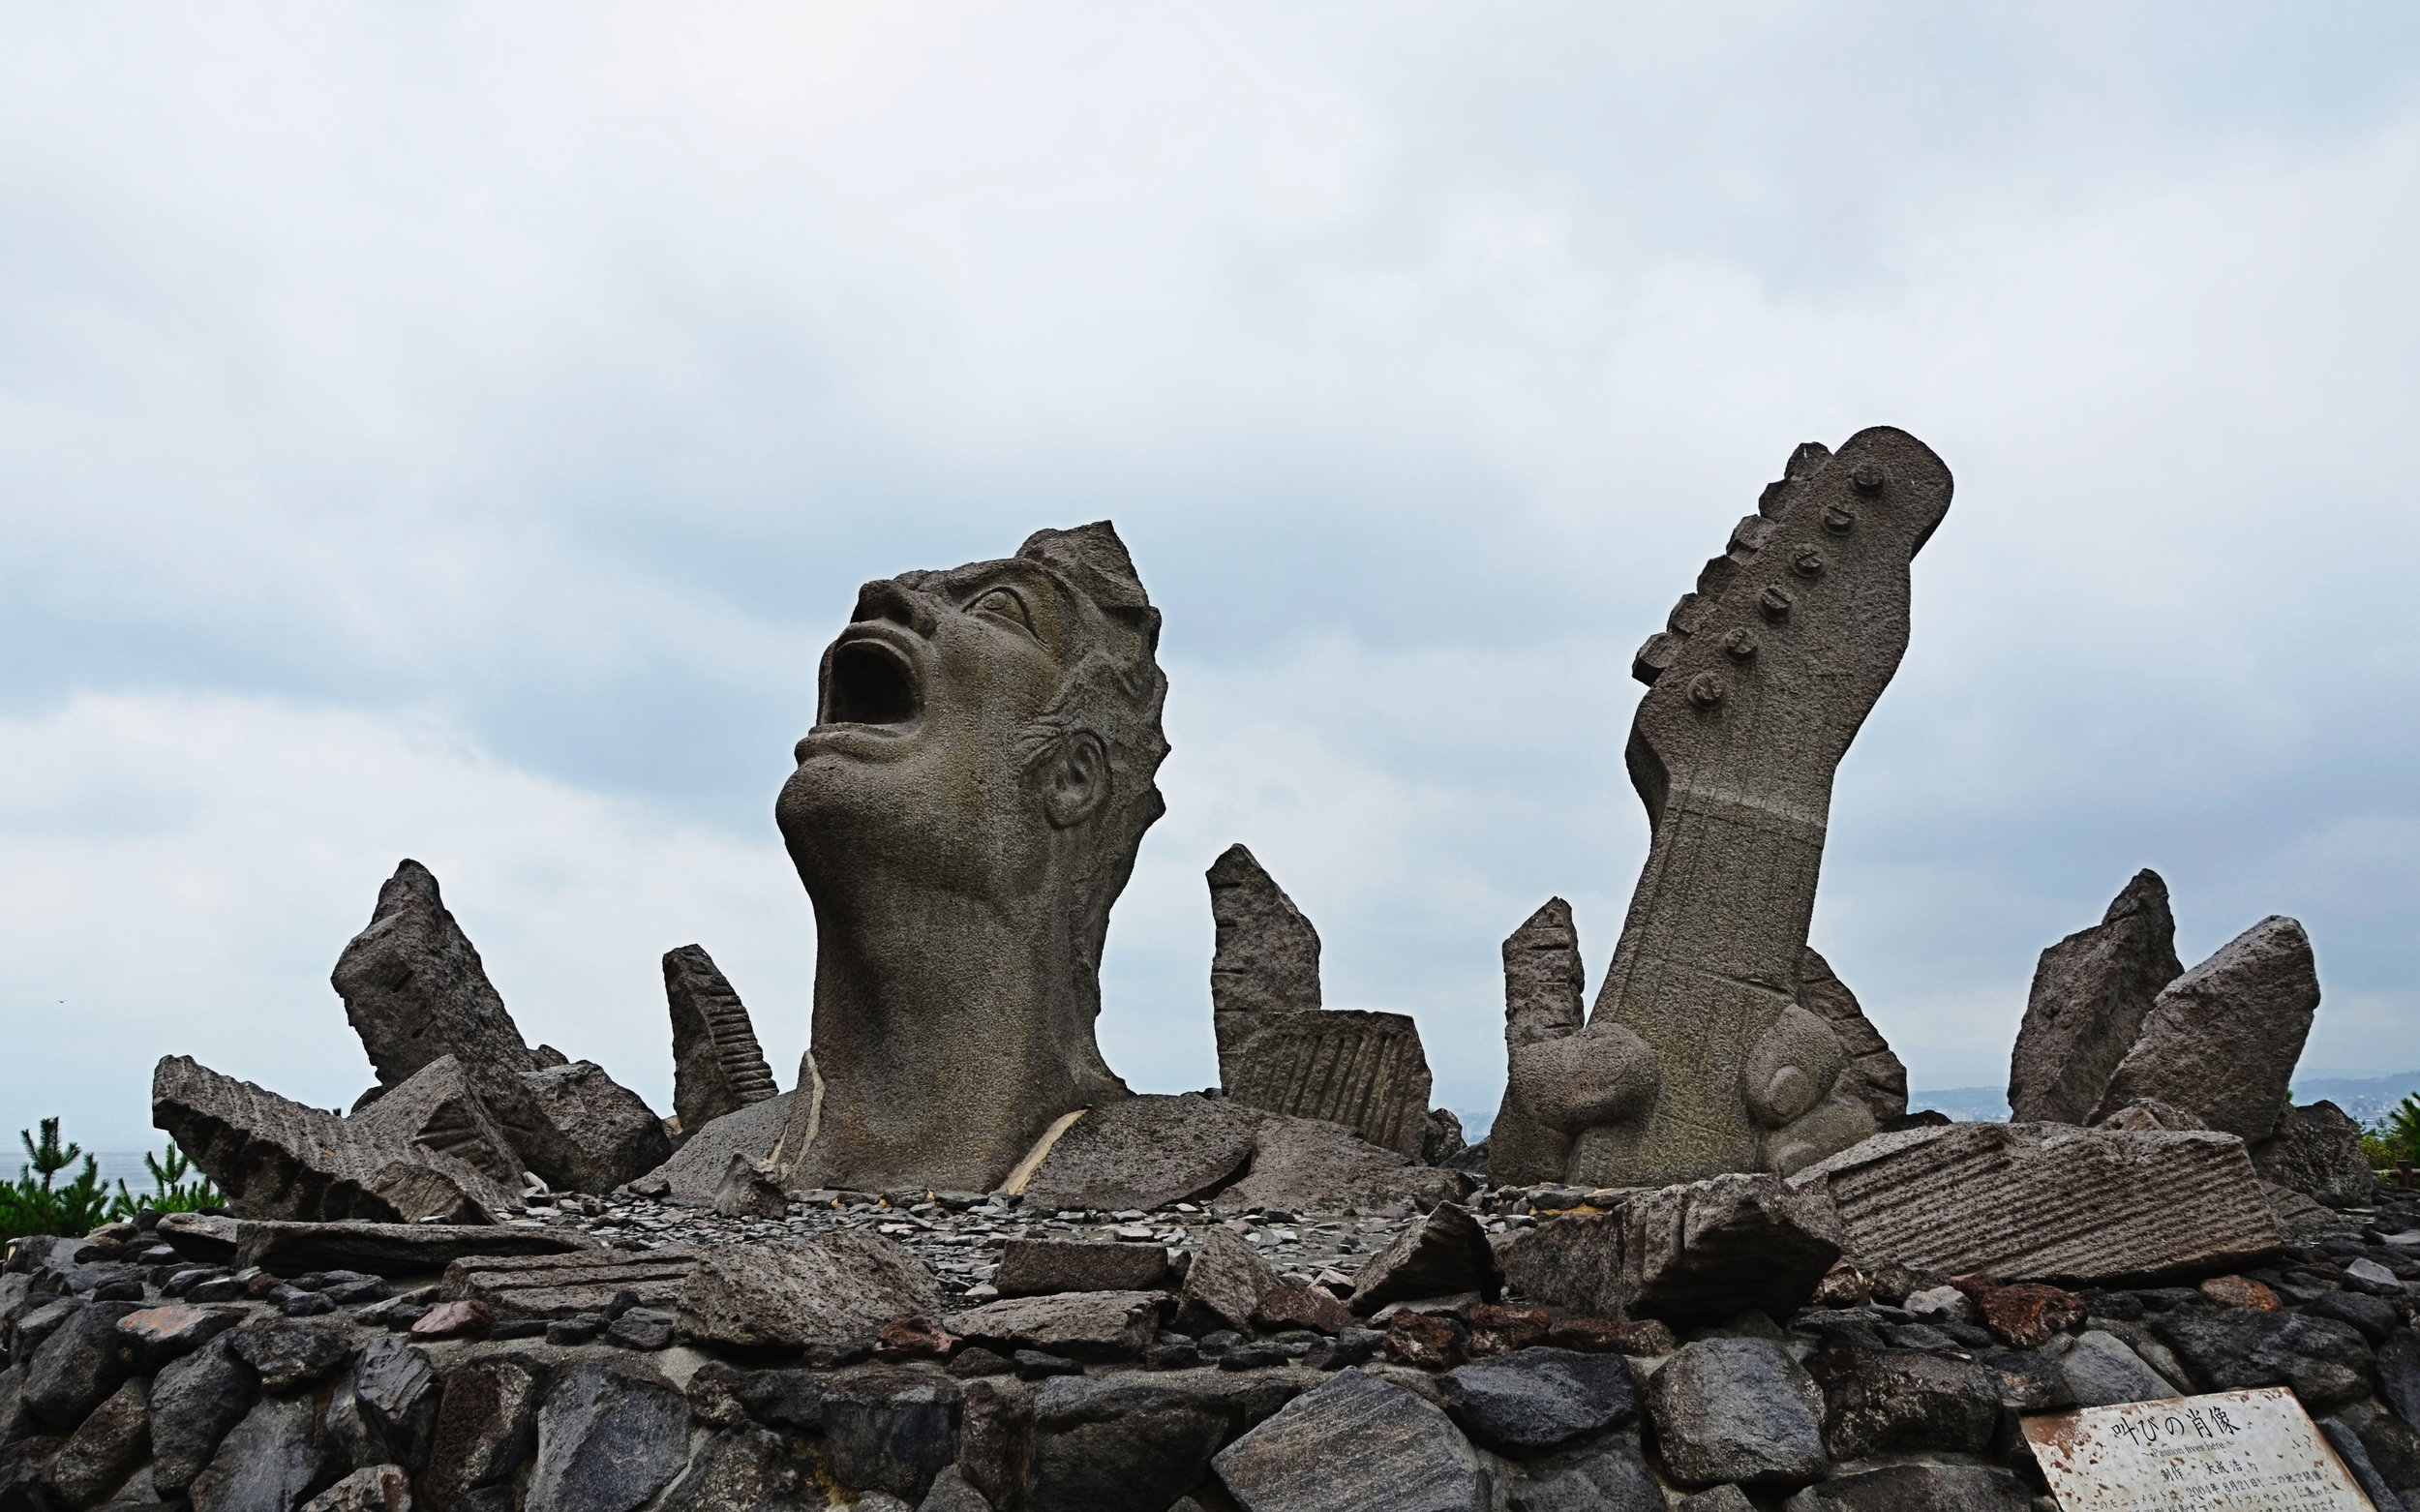 Shouting statue, commemorating an all-night concert by Tsuyoshi Nagabuchi. There is a bus stop nearby.